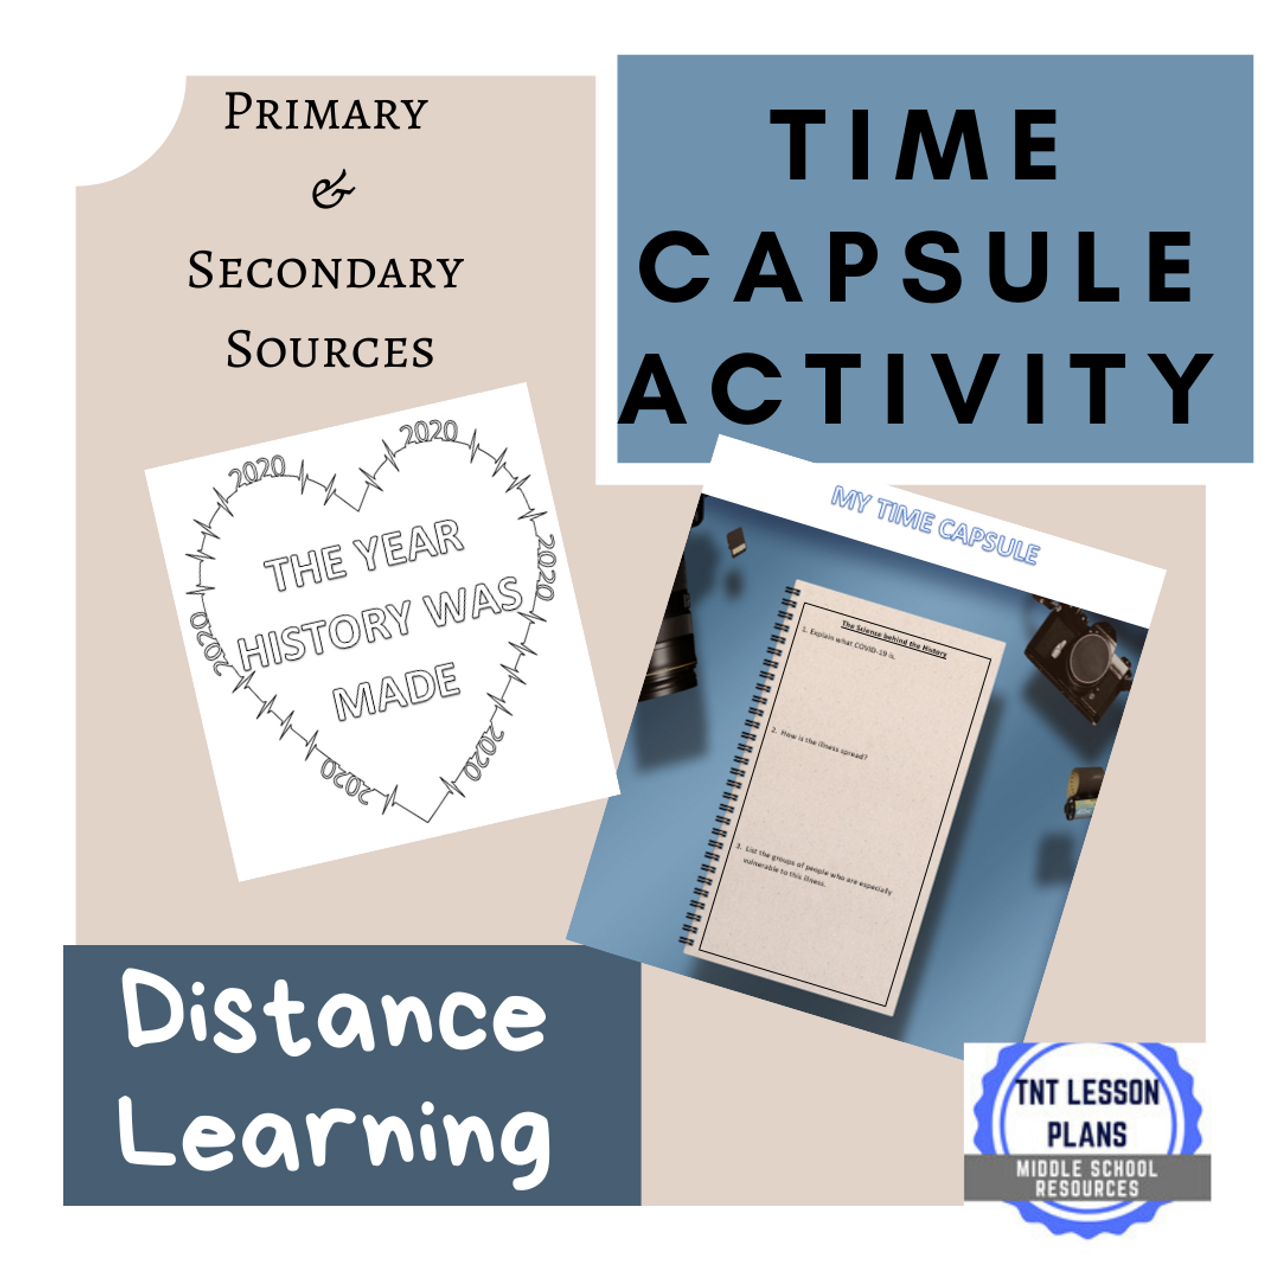 Historic Time Capsule - Primary and Secondary Sources